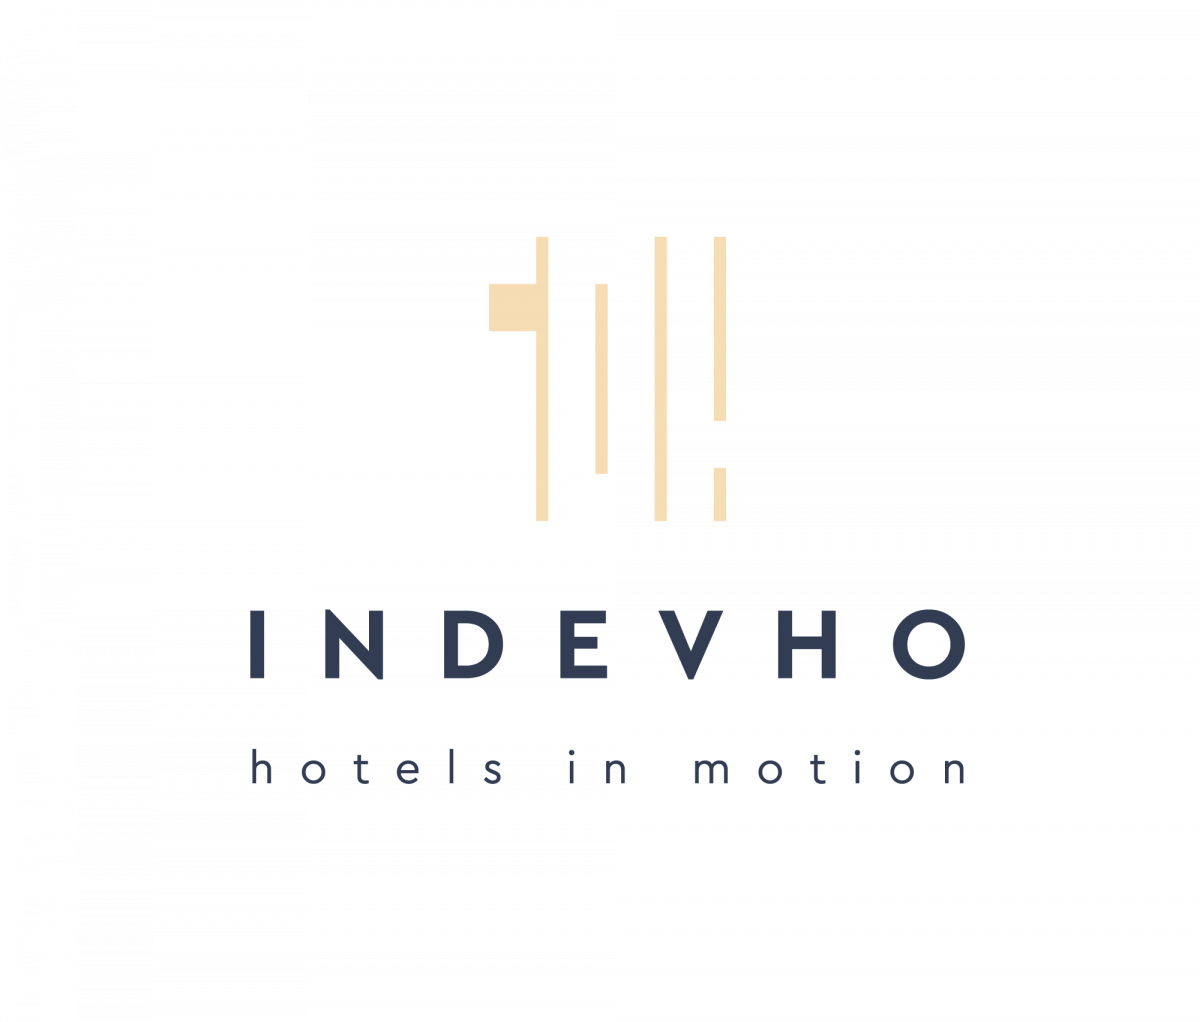 Indevho - Hotels in Motion